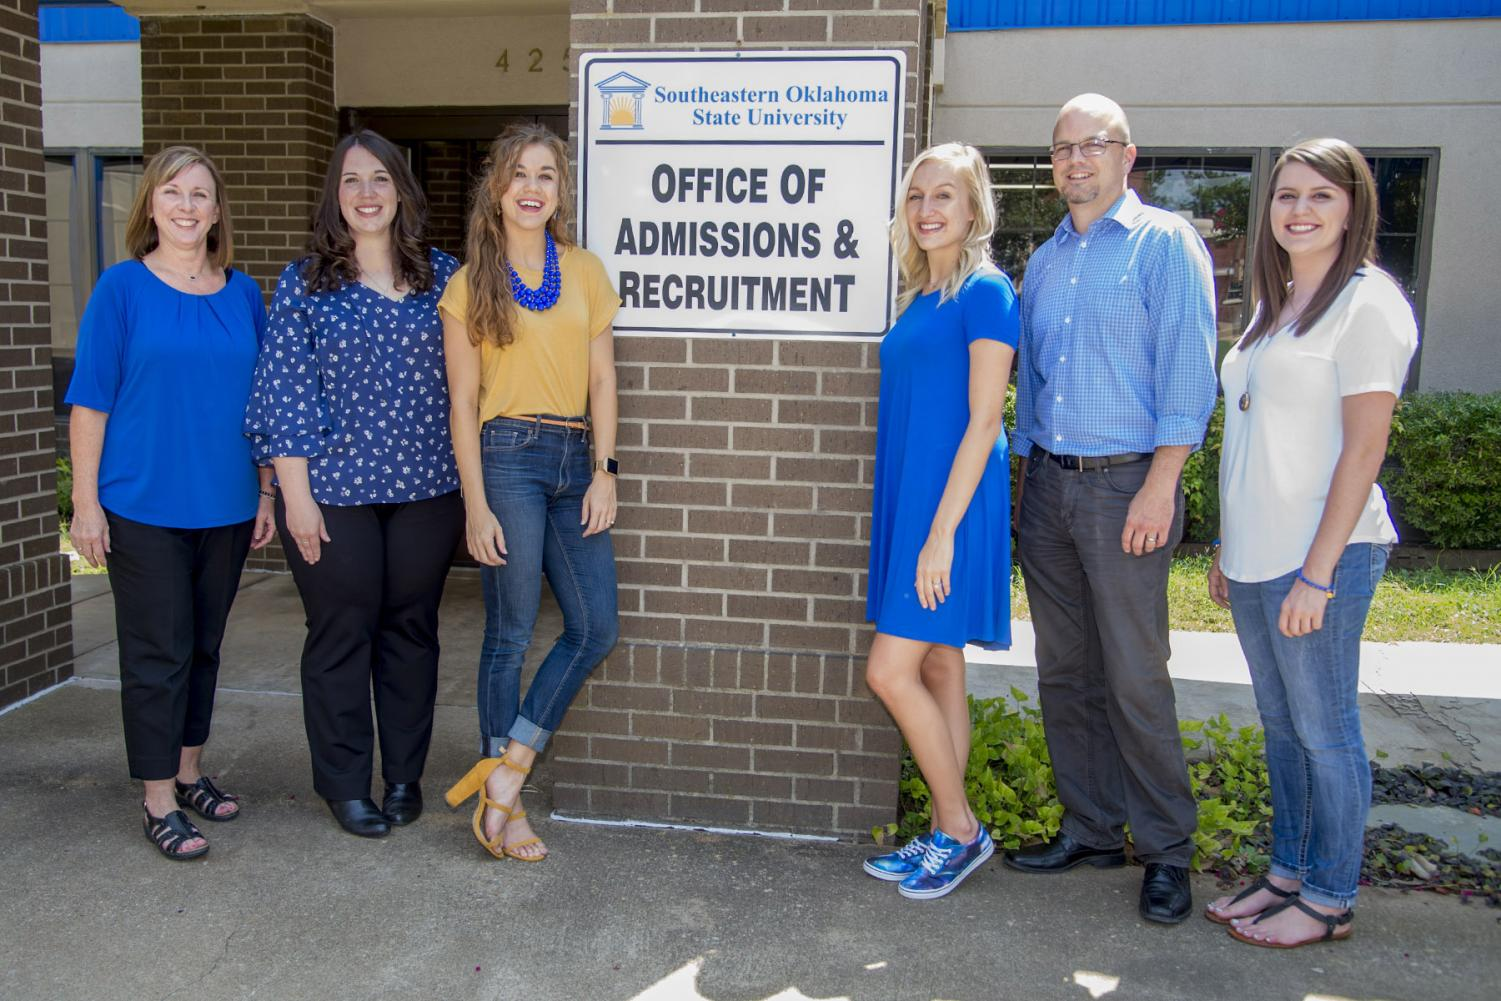 Members of the Admissions and Recruitment Office are Tonya Tollett, Megan Cochran, Sheridan Burns, Sarah Hughes, Jeremy Rowland, and Alesha Birks.